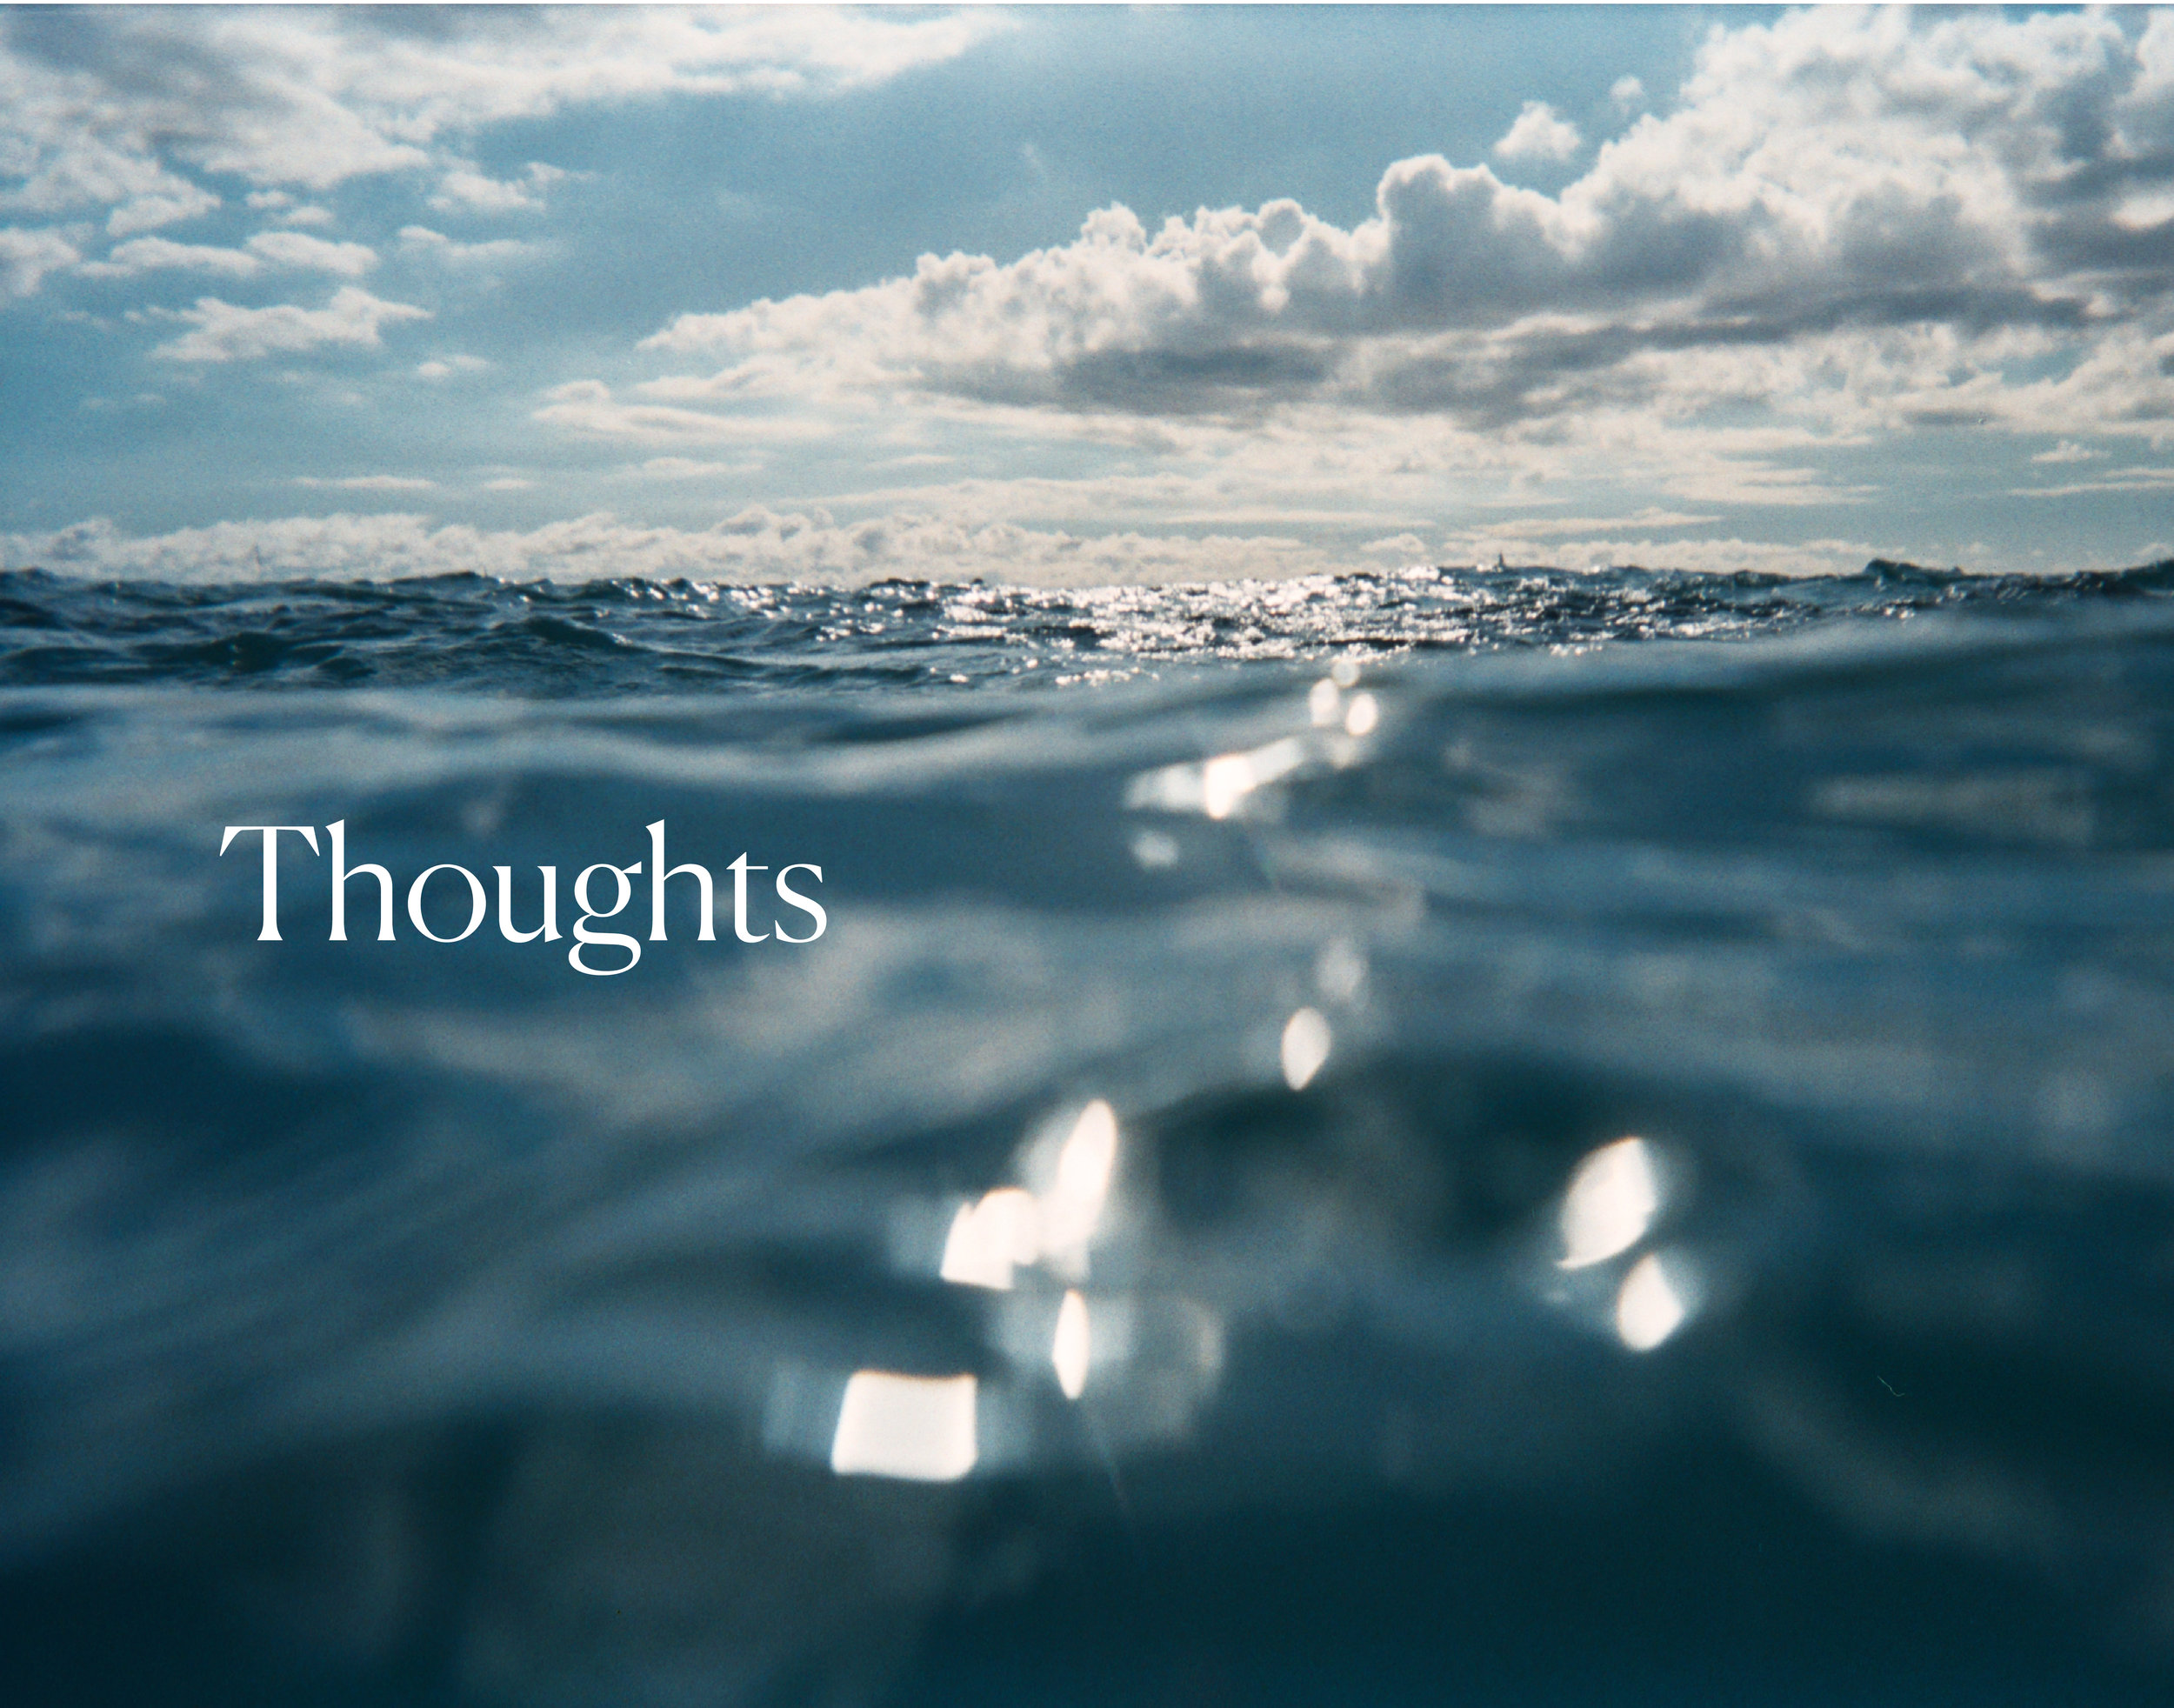 Thoughts - courtneychew.com